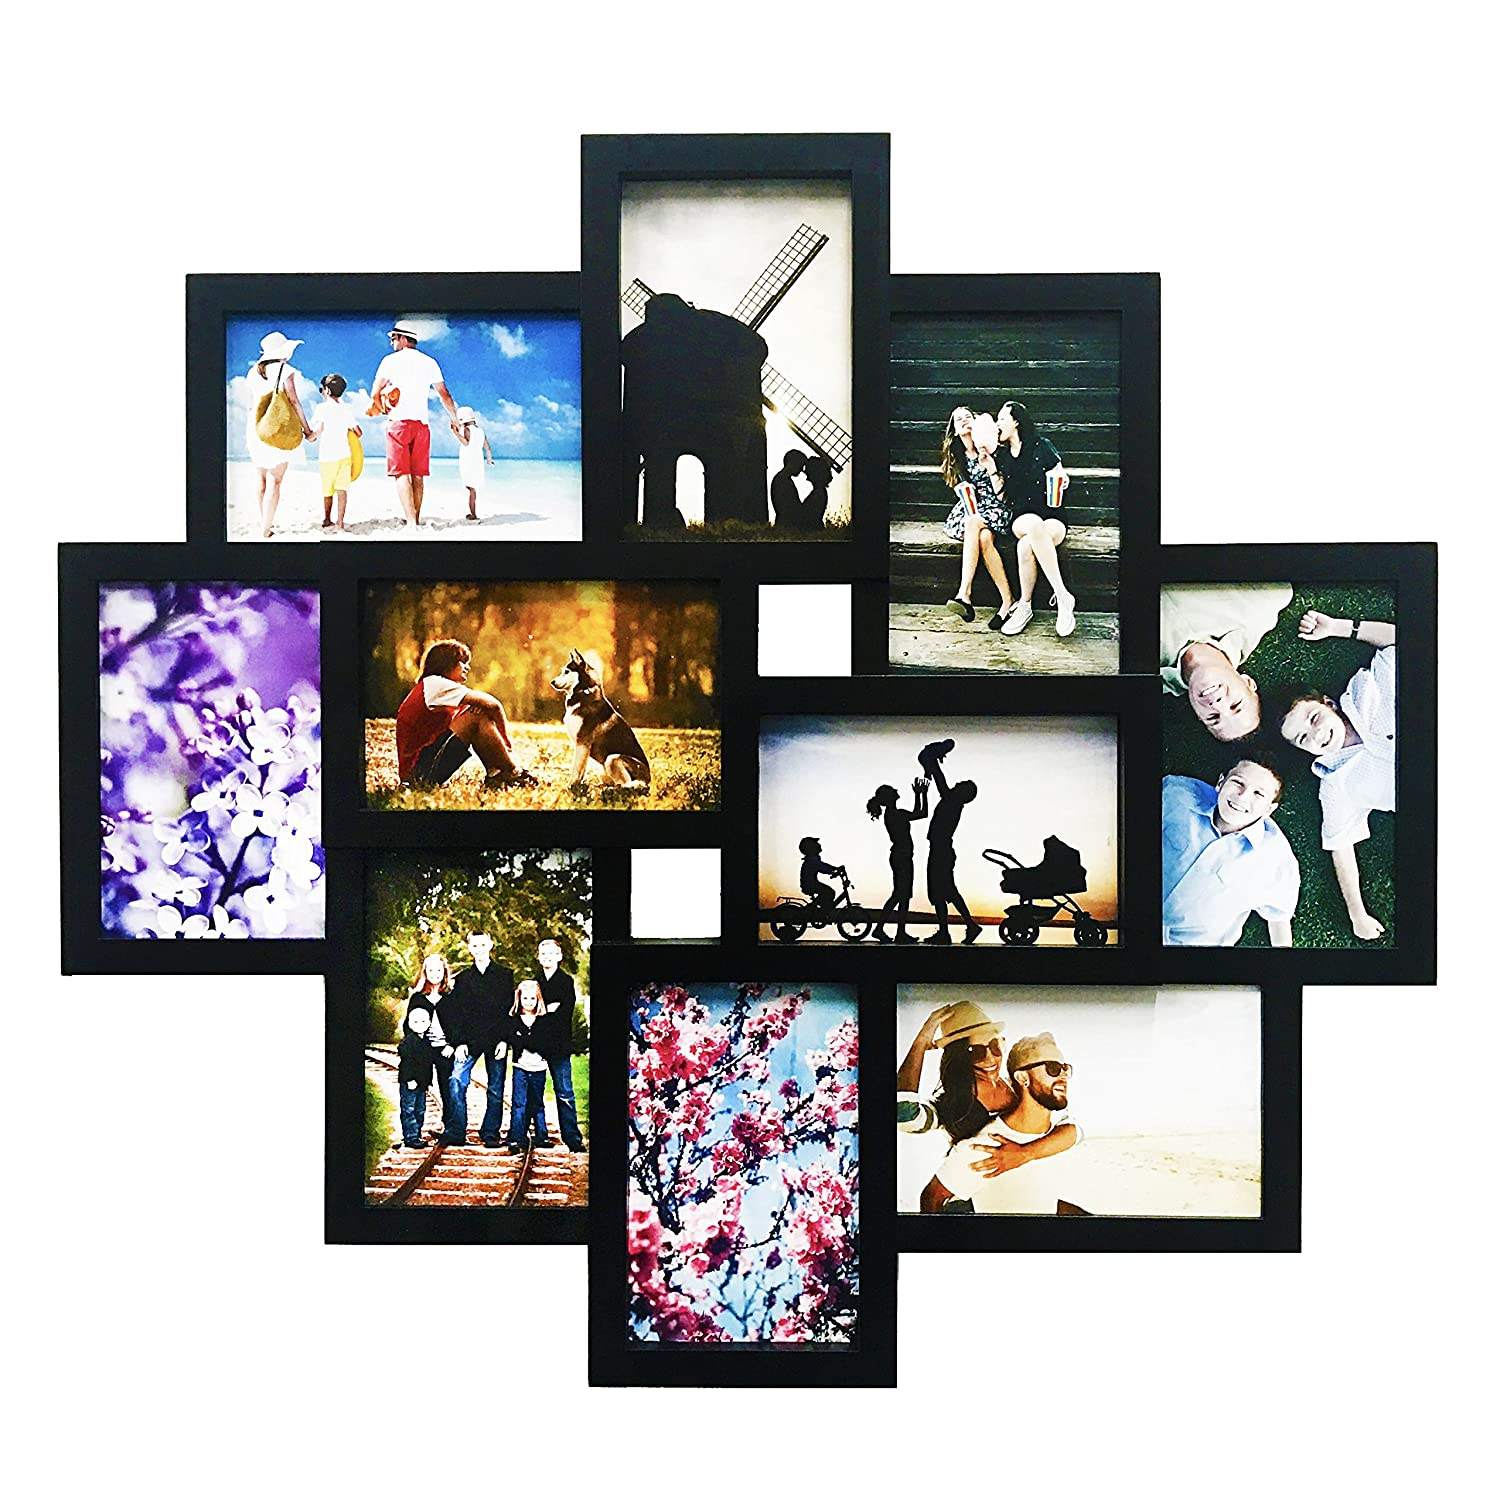 Amazon bestbuy frames wall hanging large 10 piece multiple amazon bestbuy frames wall hanging large 10 piece multiple opening collage picture black frames for 4 inch by 6 inch photos jeuxipadfo Images